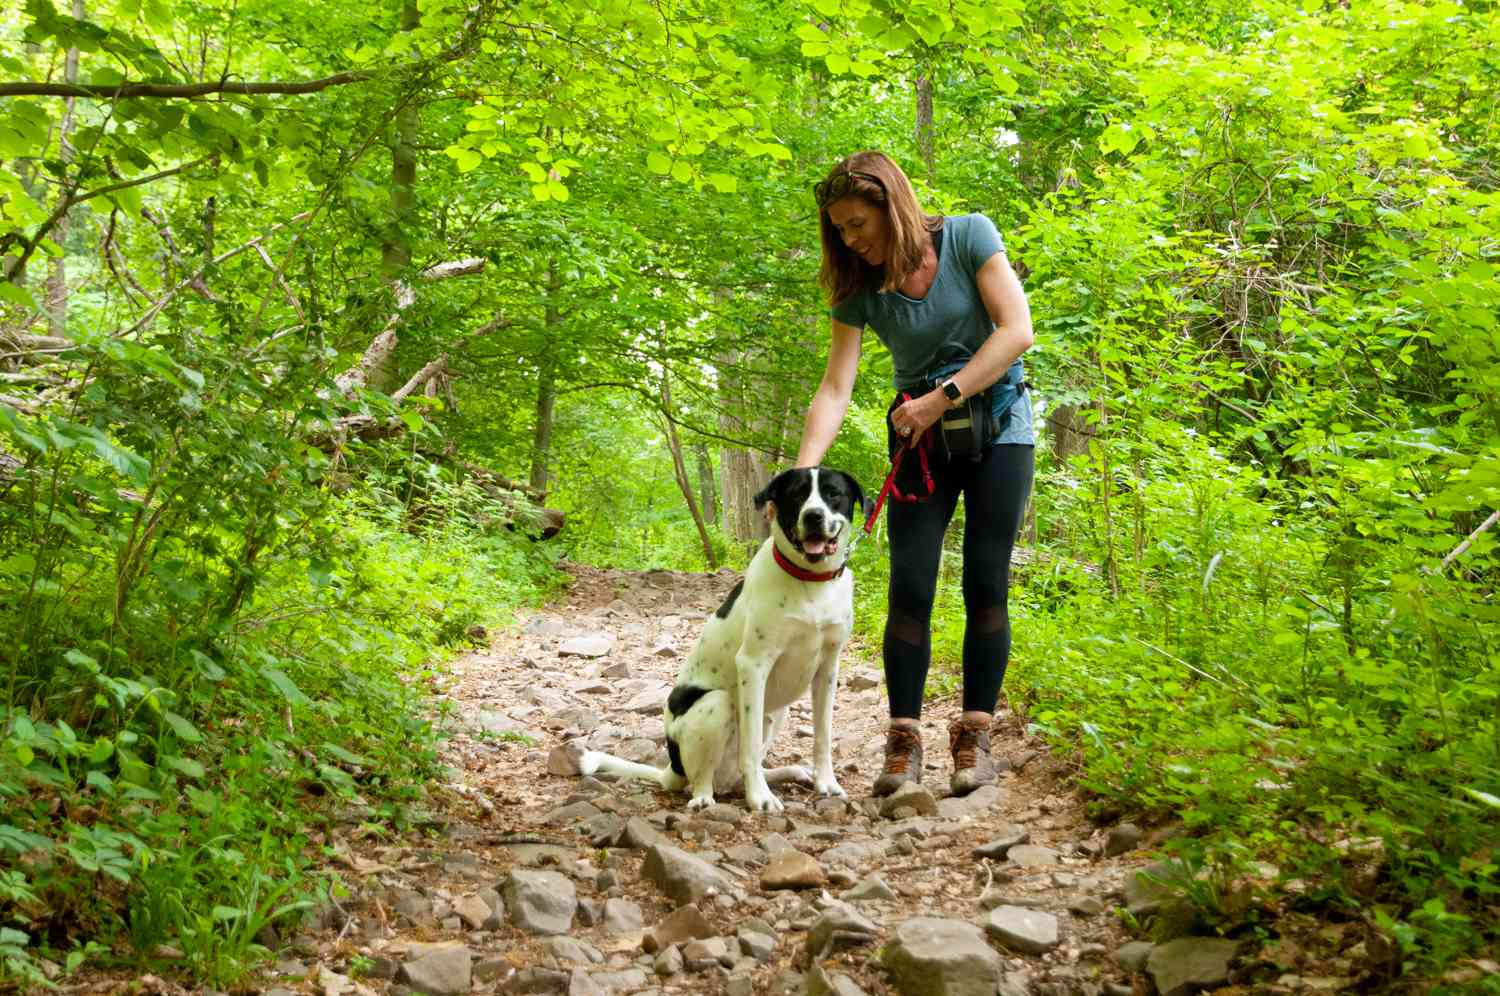 red-headed woman and dog pause on rocky footpath in middle of forest hike